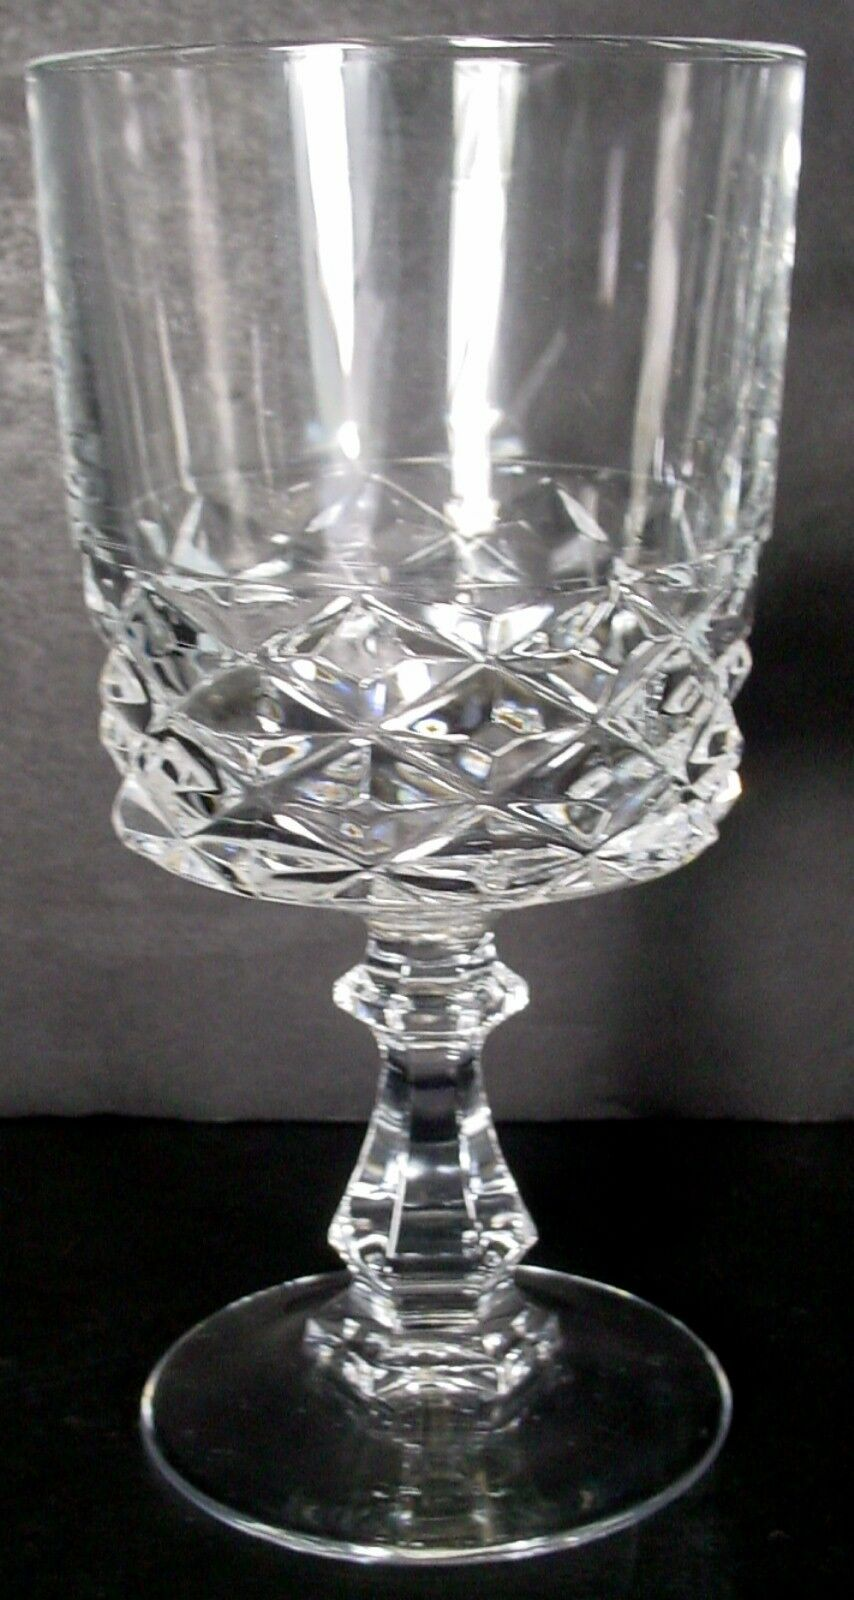 CRISTAL D'ARQUES Durand crystal DIAMOND pattern WINE GLASS 5-1/4